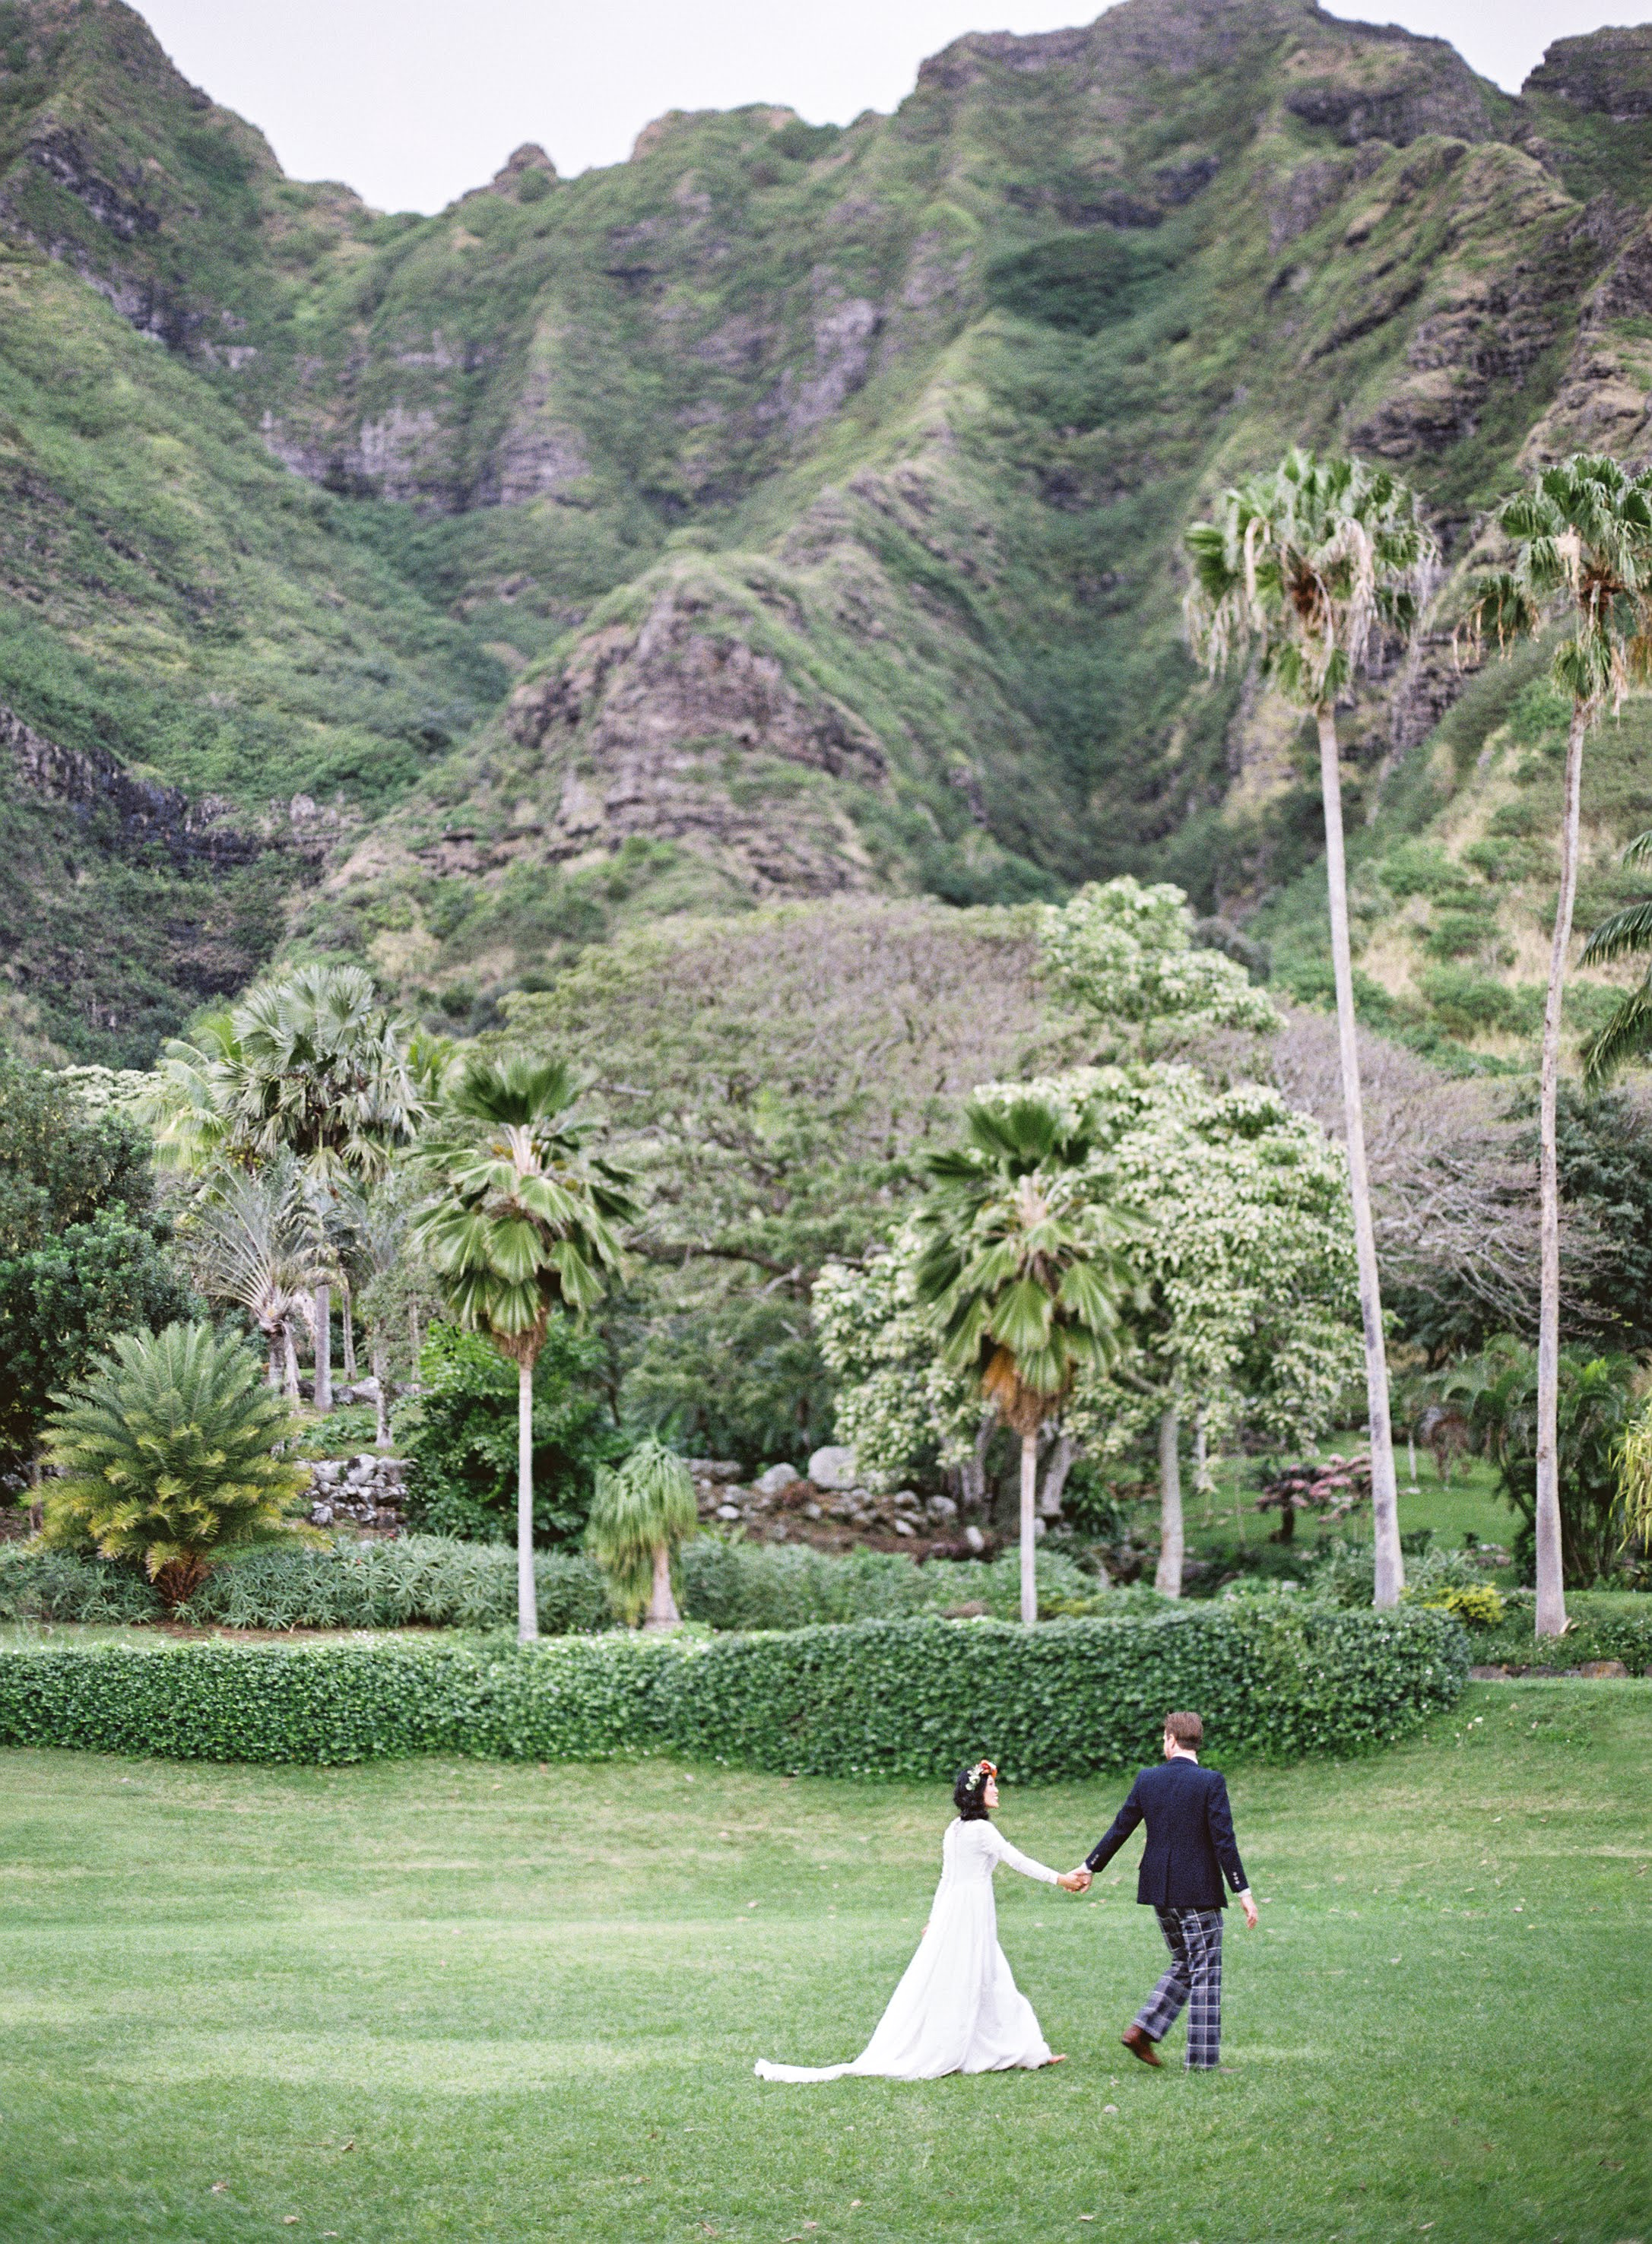 Bride and froom hold hands, walking through greenery